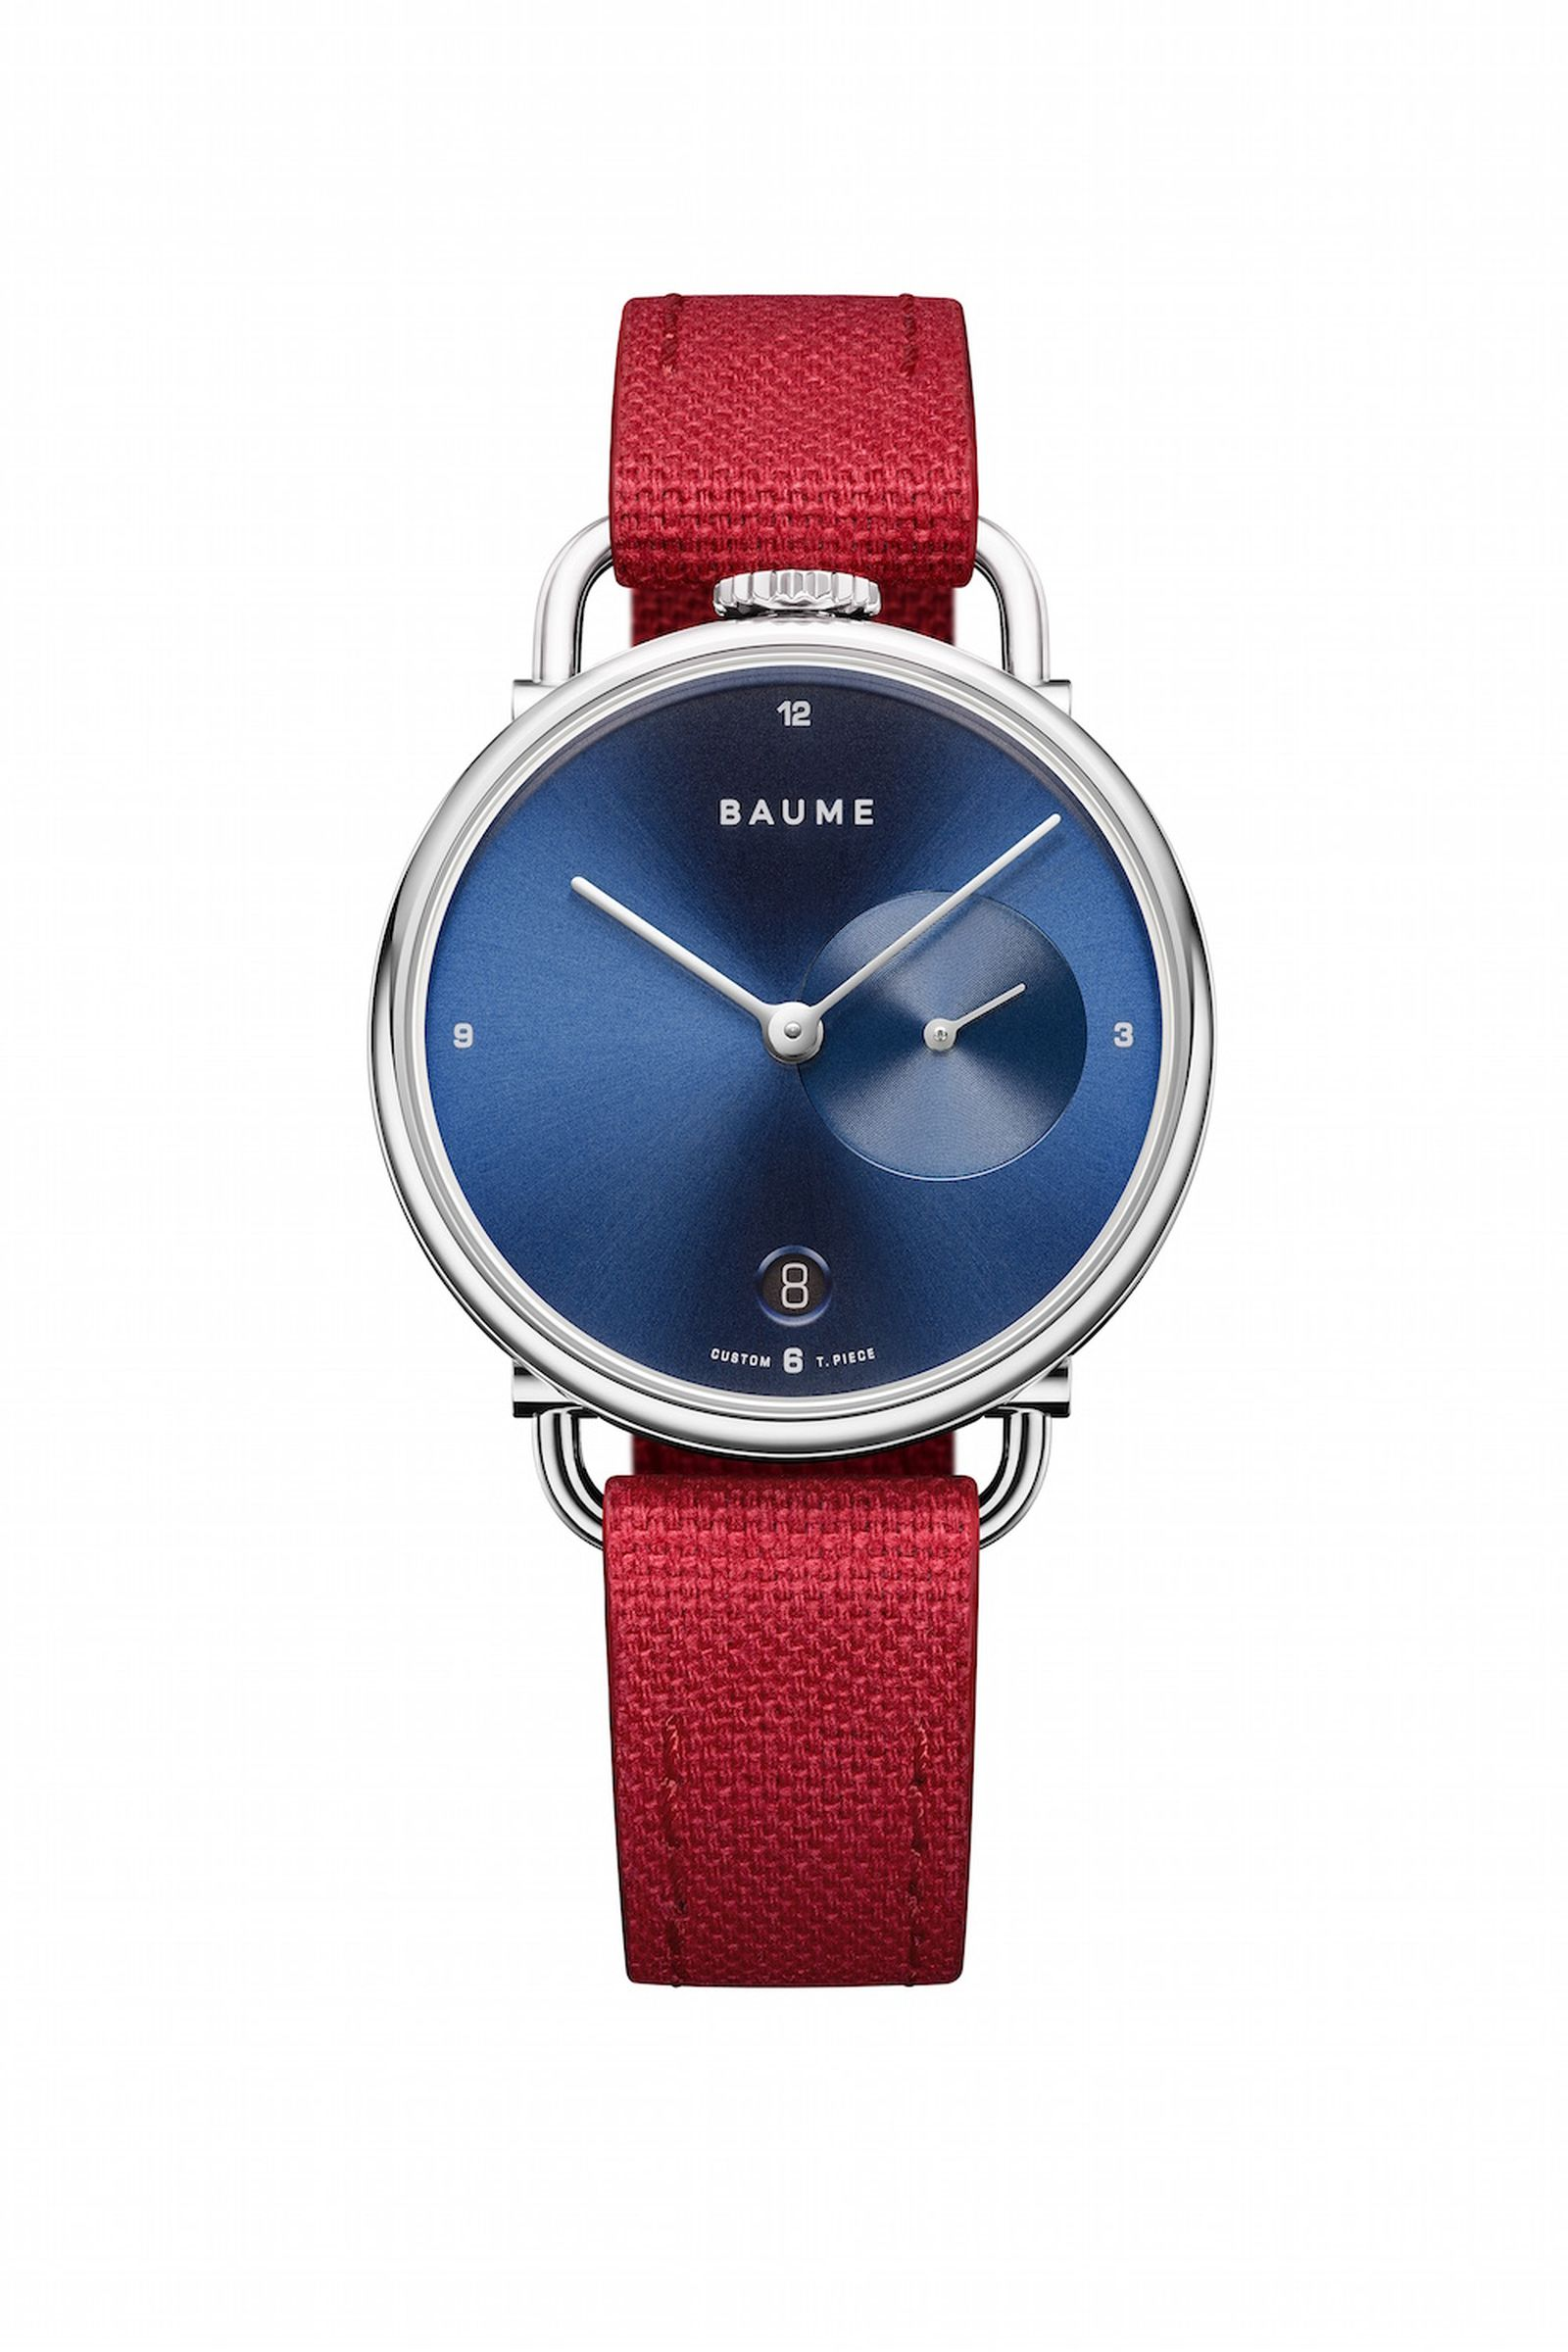 baume-sustainable-watch-collection-03